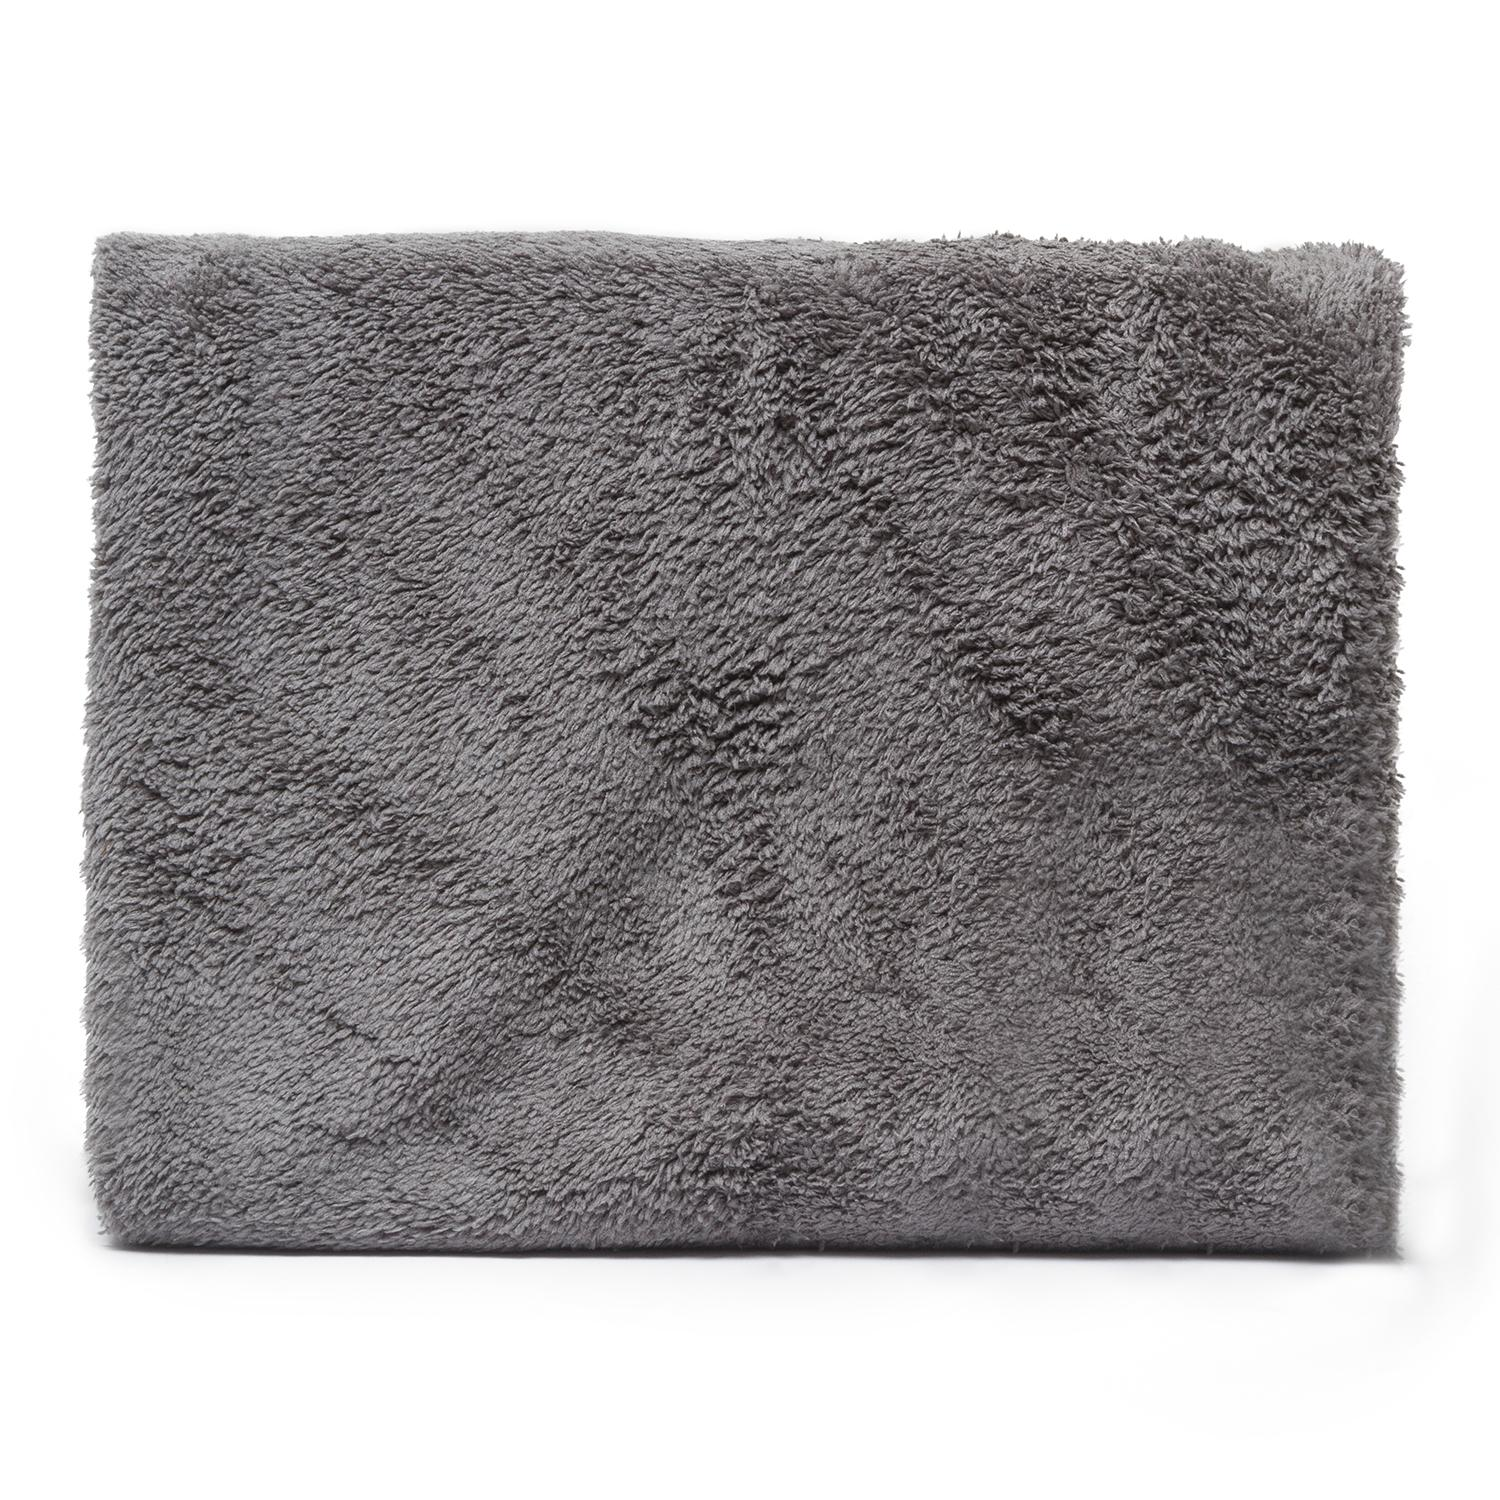 Messy Mutts Microfiber Ultra Soft Towel with Hand Pockets, Cool Grey, Medium